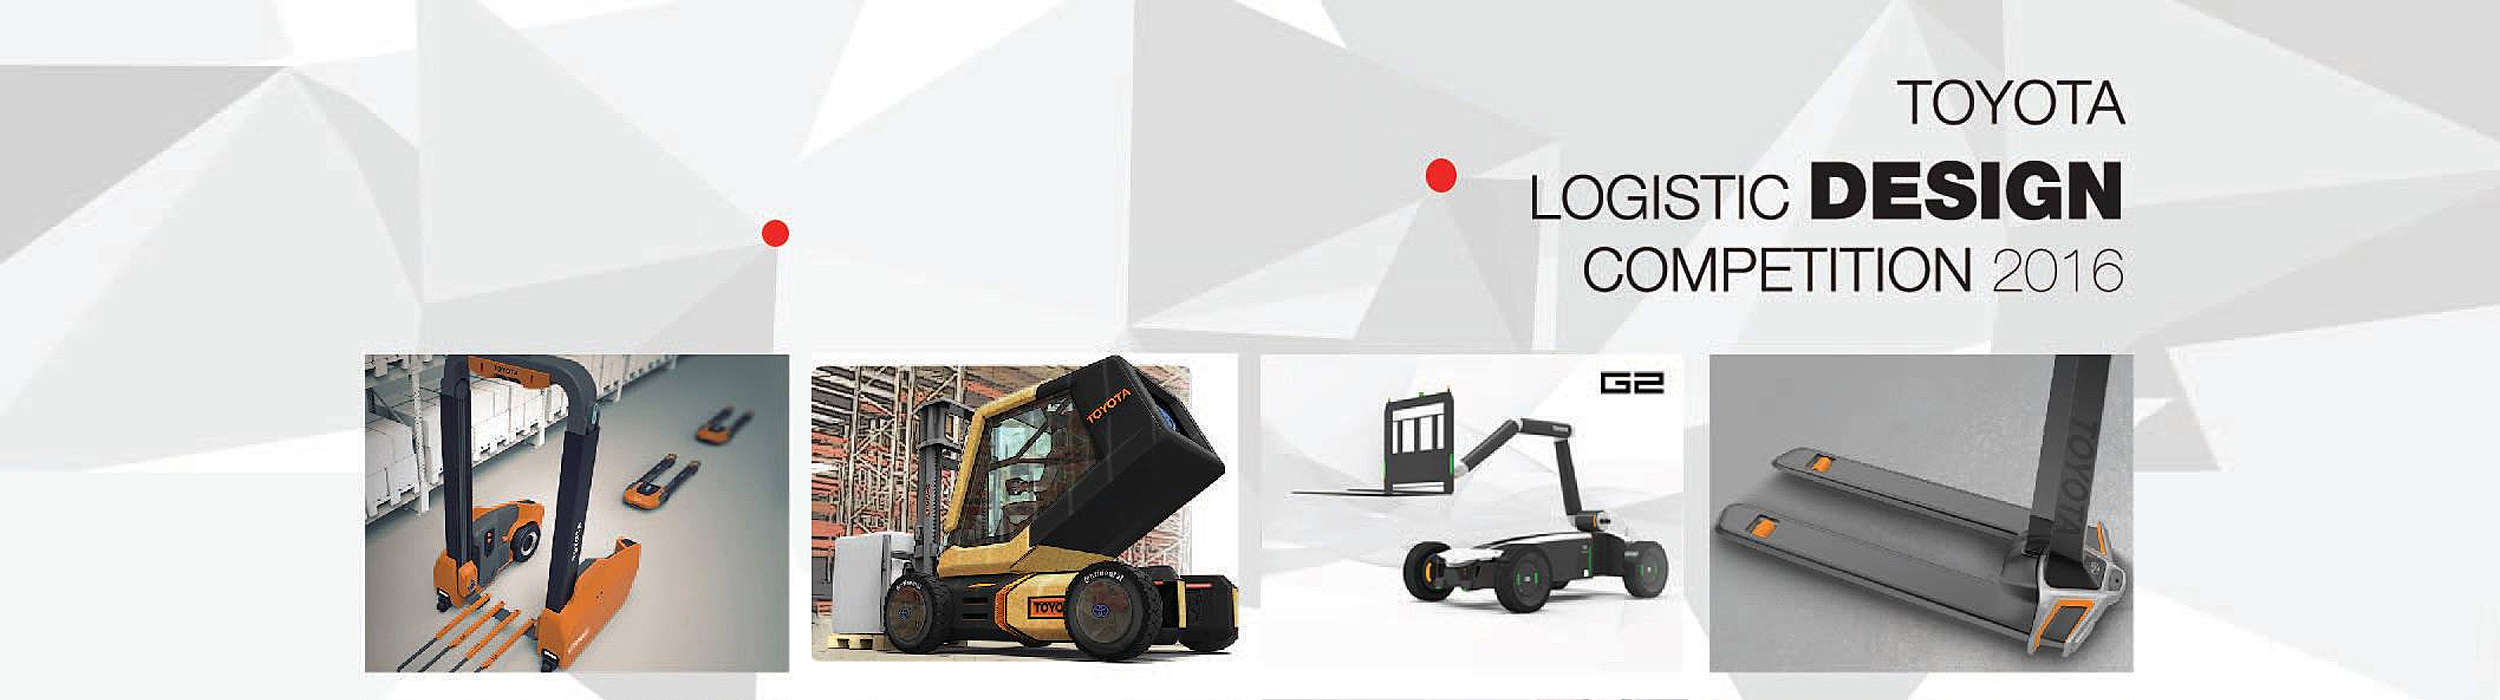 Toyota Material Handling Europe Appoints Winners Of The Second Toyota  Logistic Design Competition